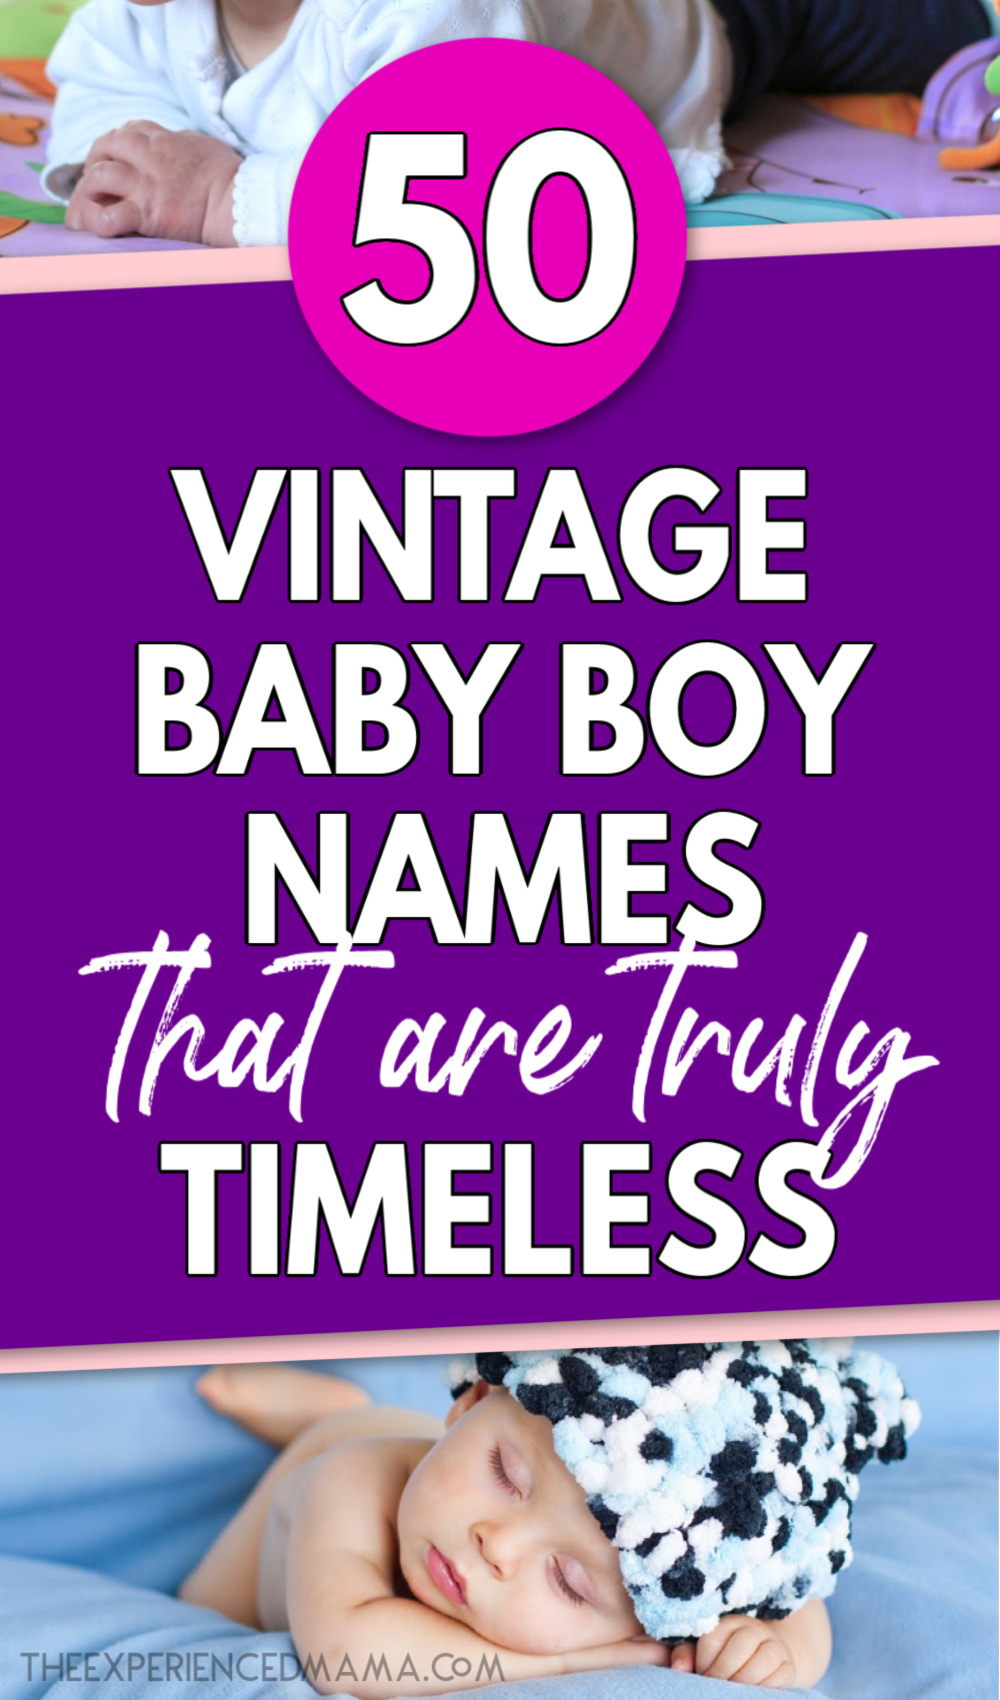 "graphic with text overlay ""50 vintage baby boy names that are truly timeless"""